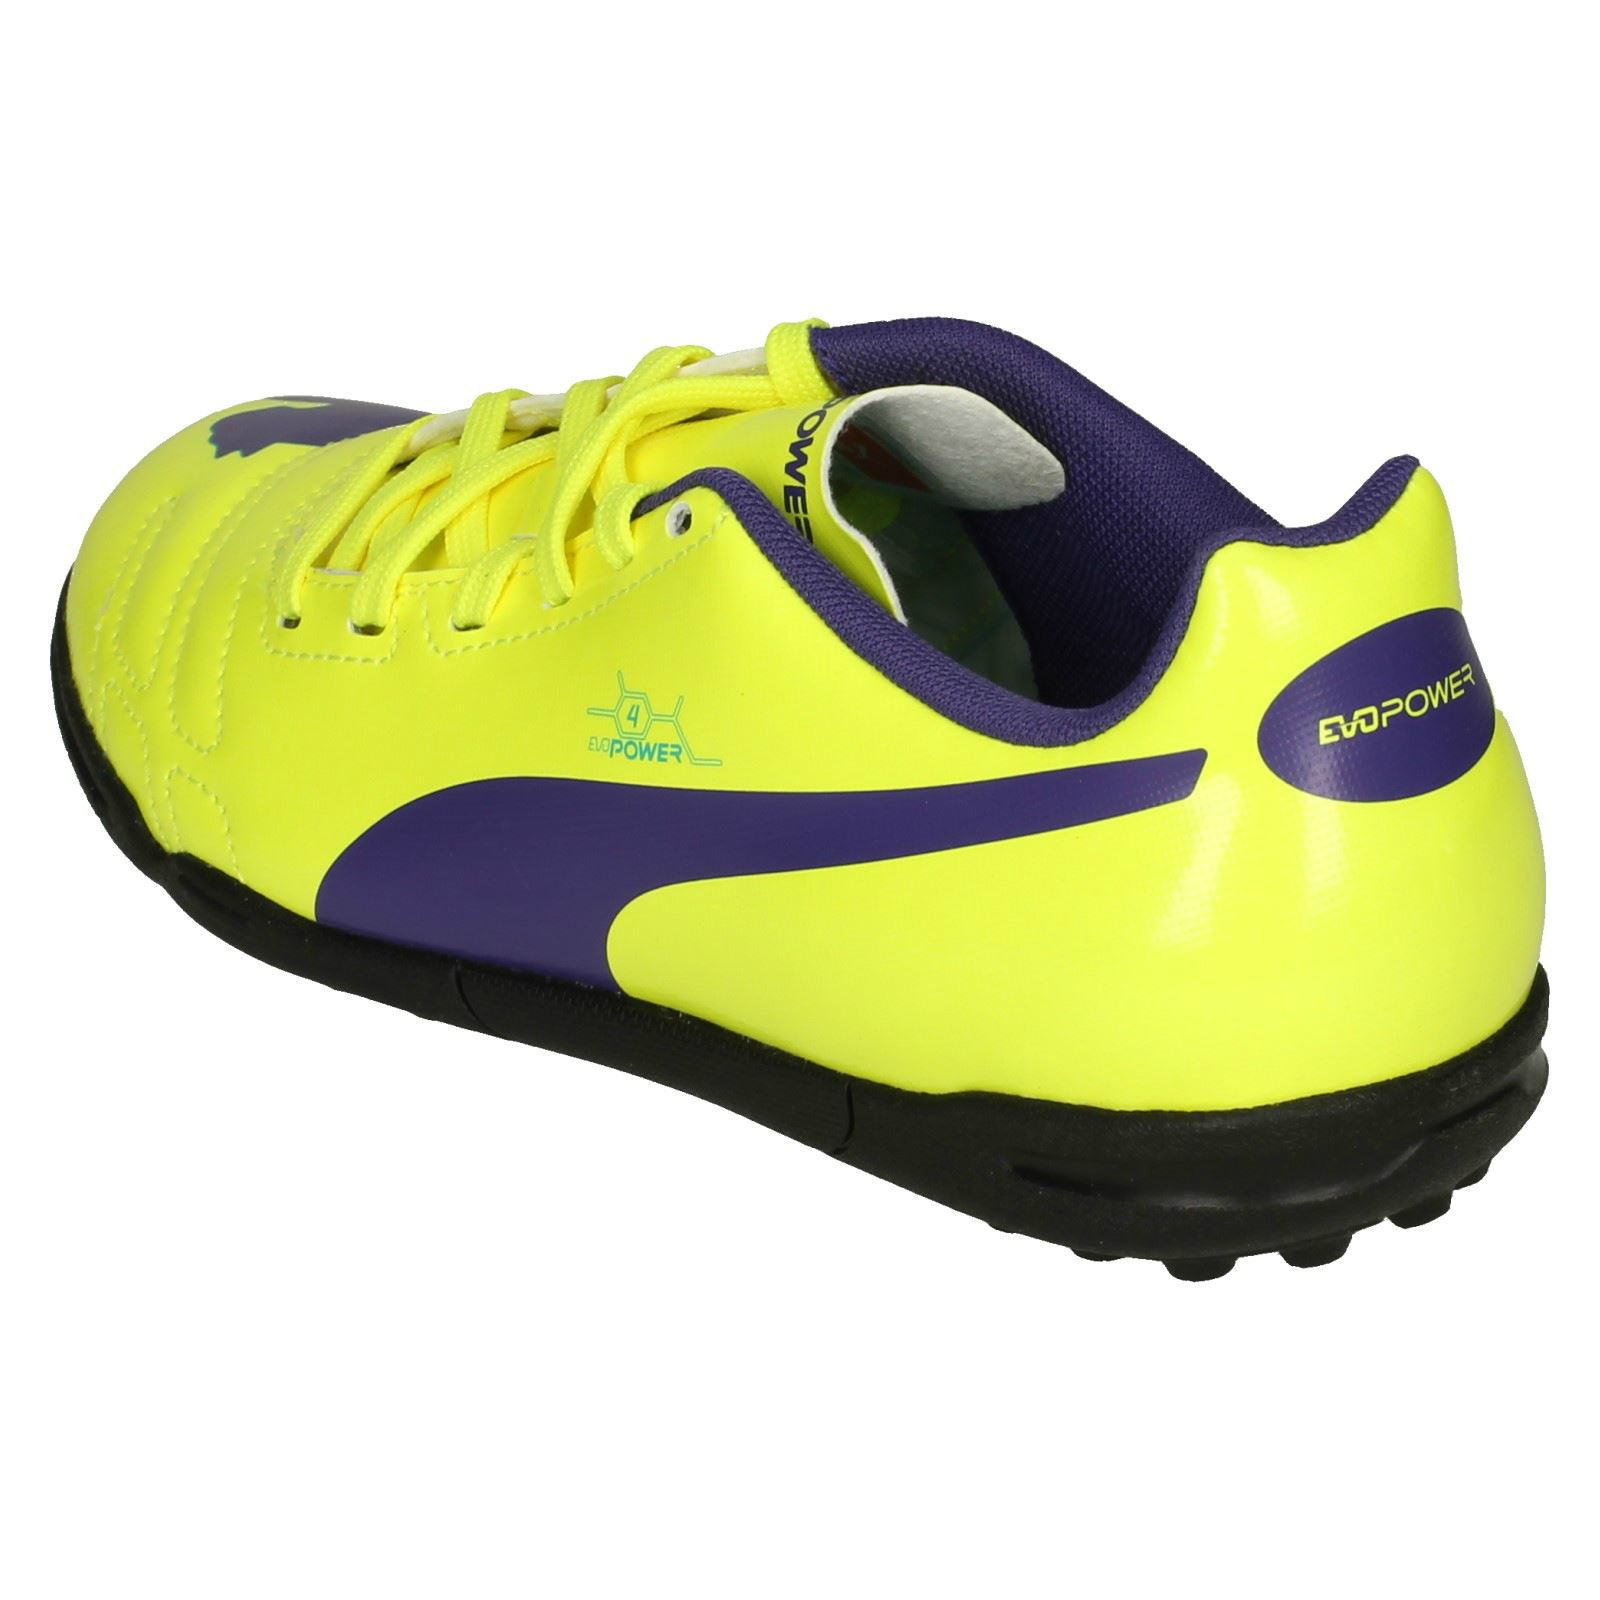 Boys Junior Puma Astro Turf Football Trainers